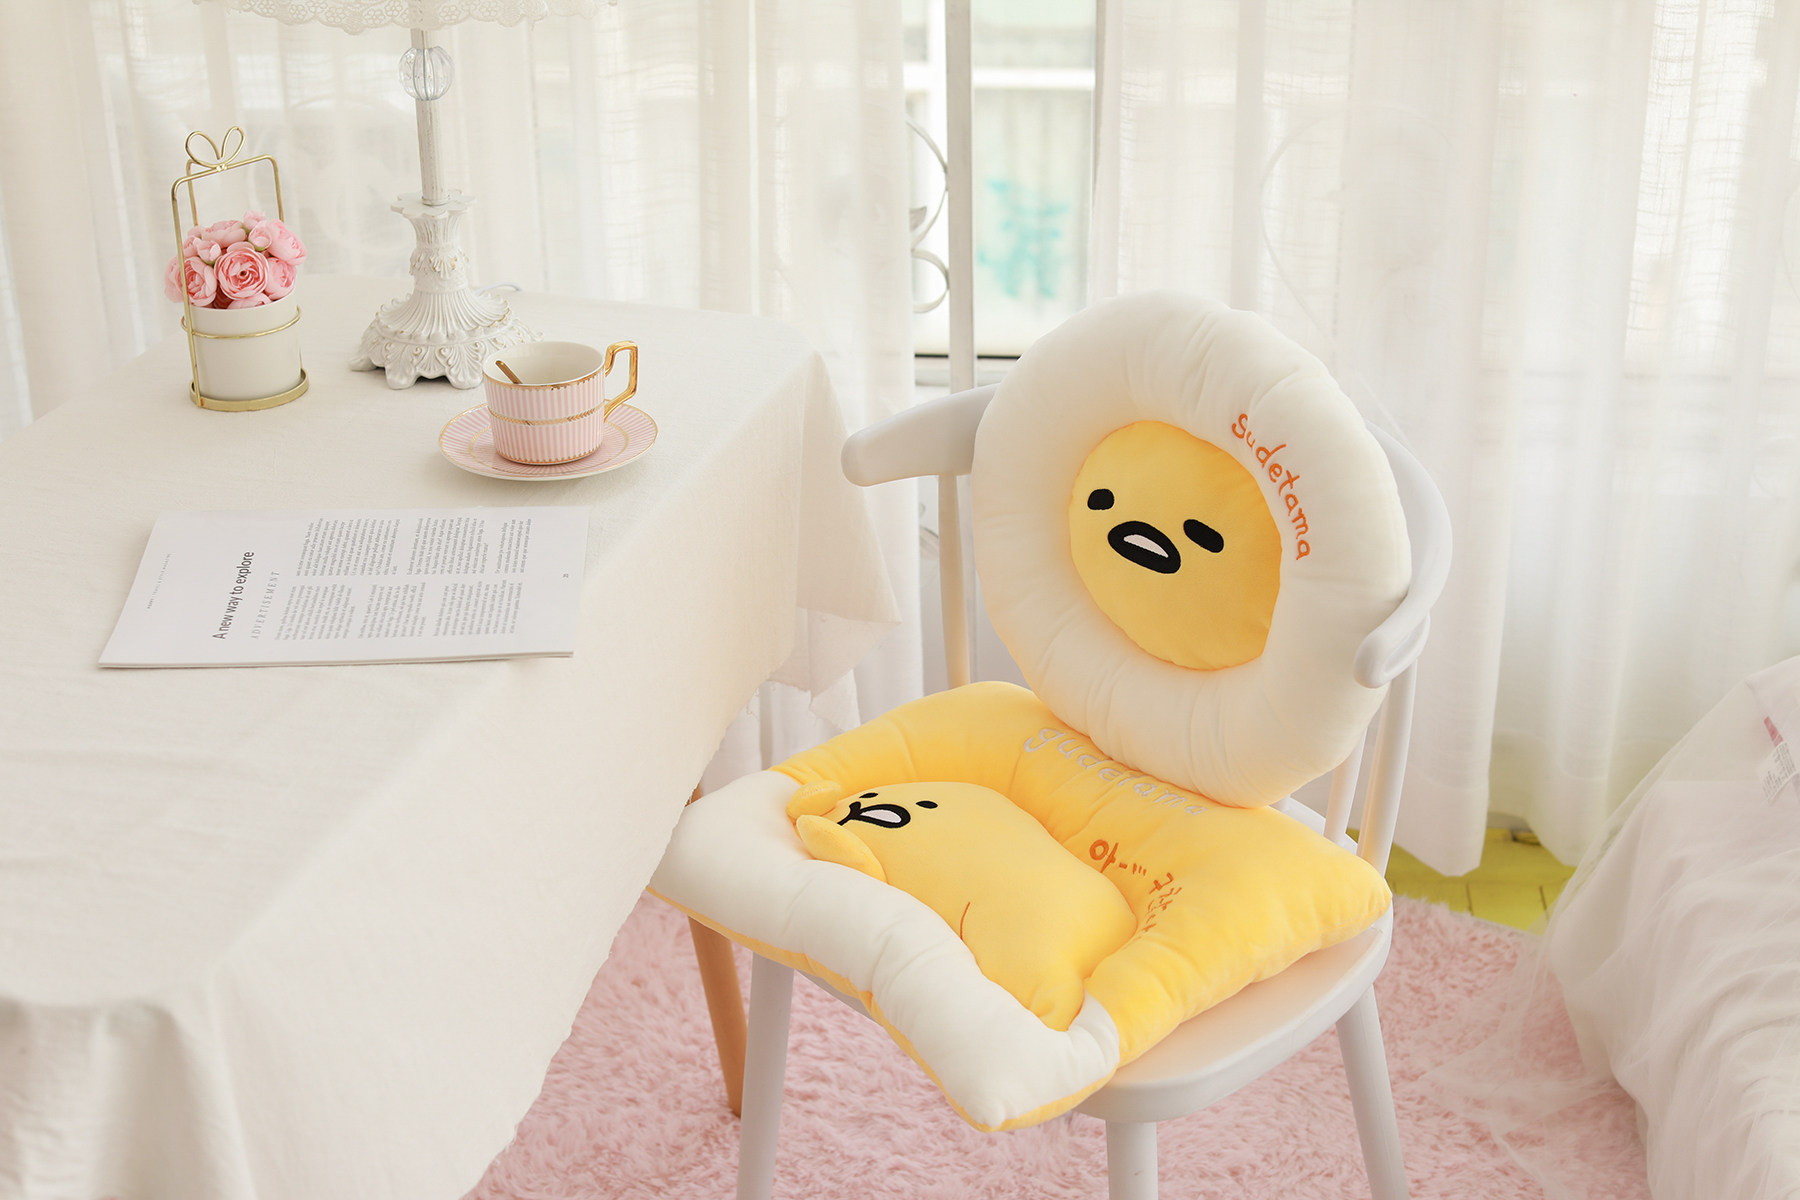 Anime Gudetama Egg With Hat U Shaped Pillow Cushion Neck Pillows Great Gift